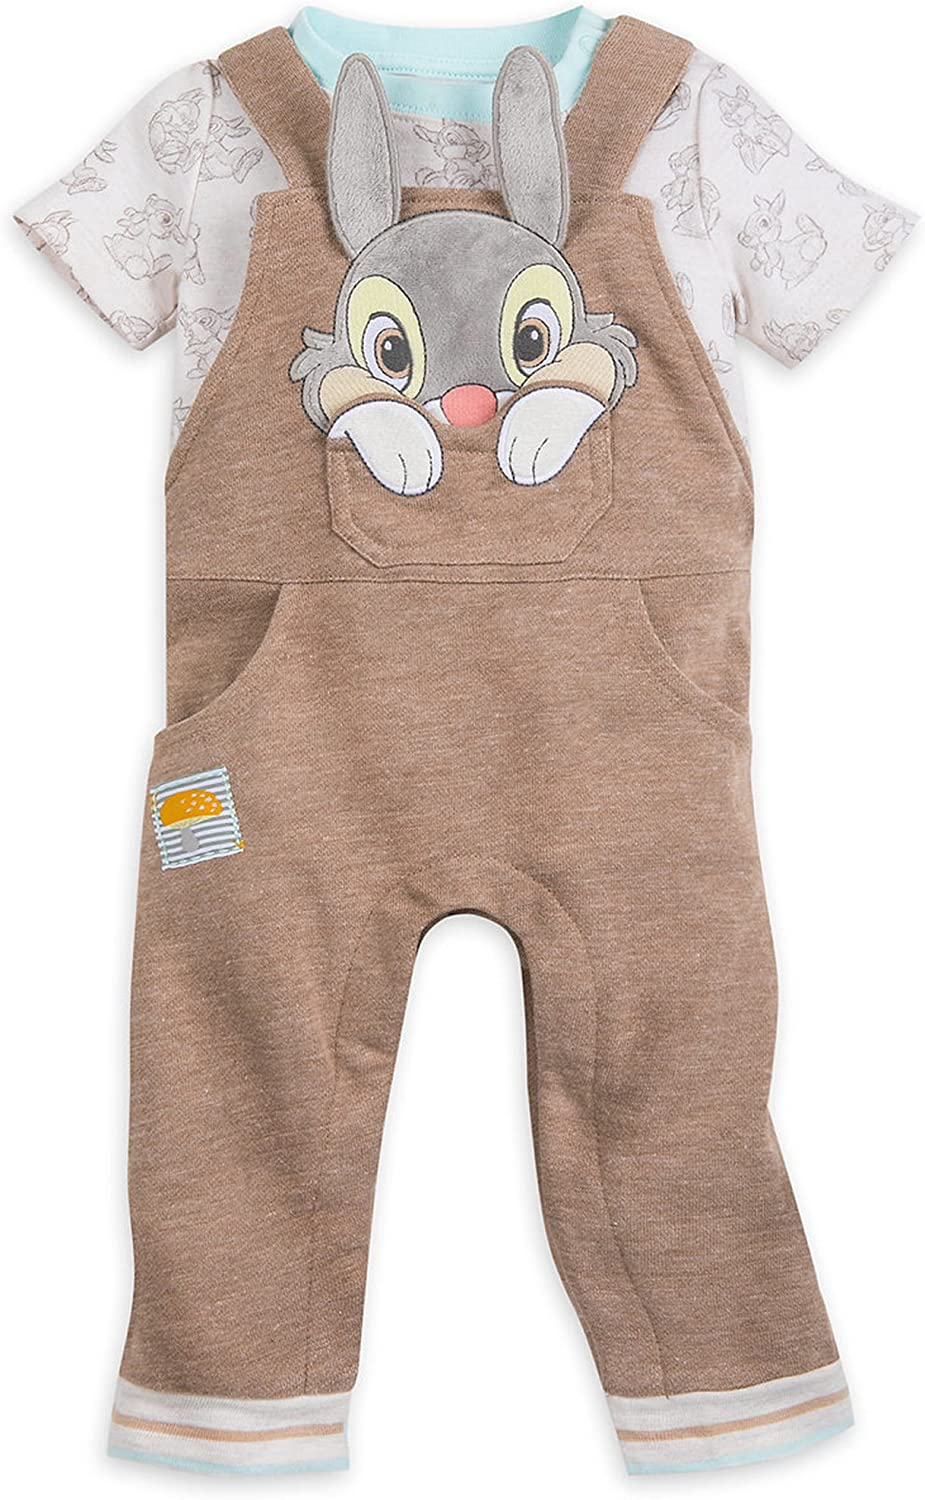 Disney Thumper Overall Set for Baby